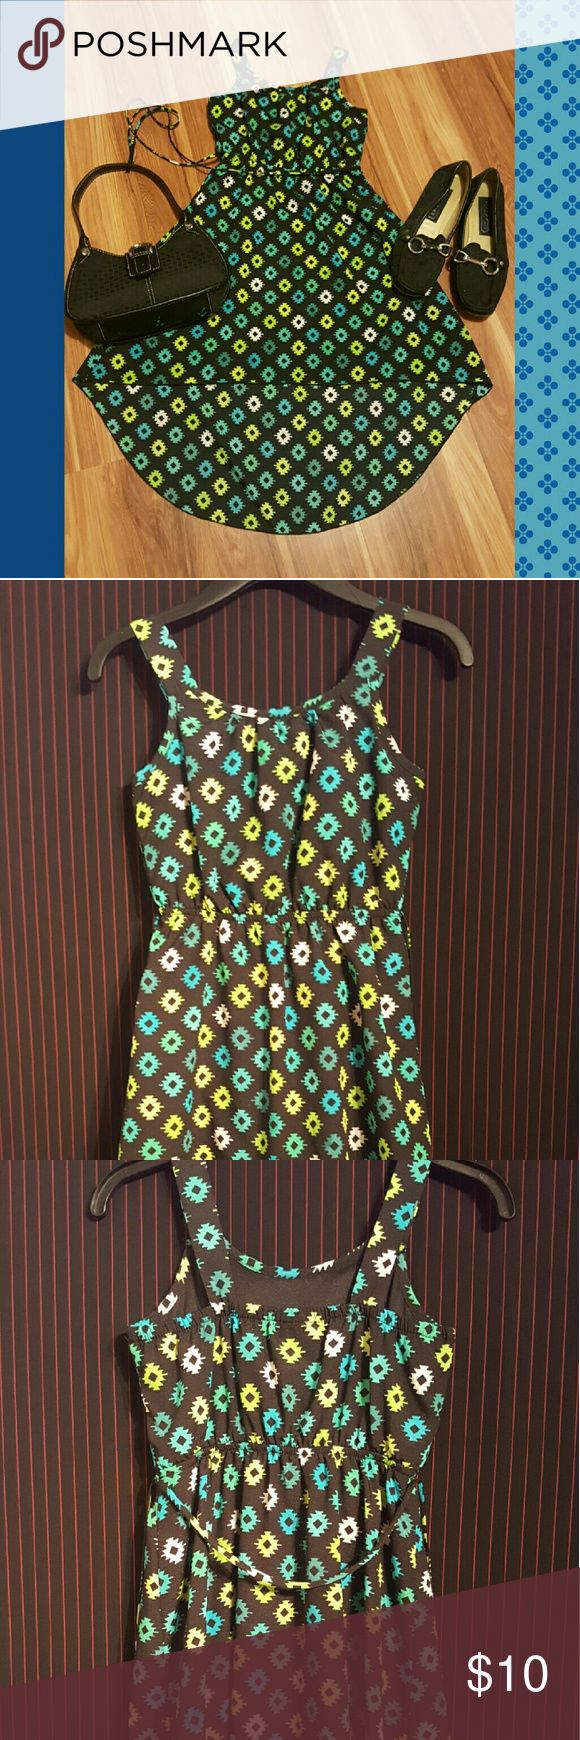 ??Young girls high-low dress?? Stylish dress for young girls in a size 7. Worn a couple of times with no stains or rips. Excellent condition. 2 time Dresses Casual